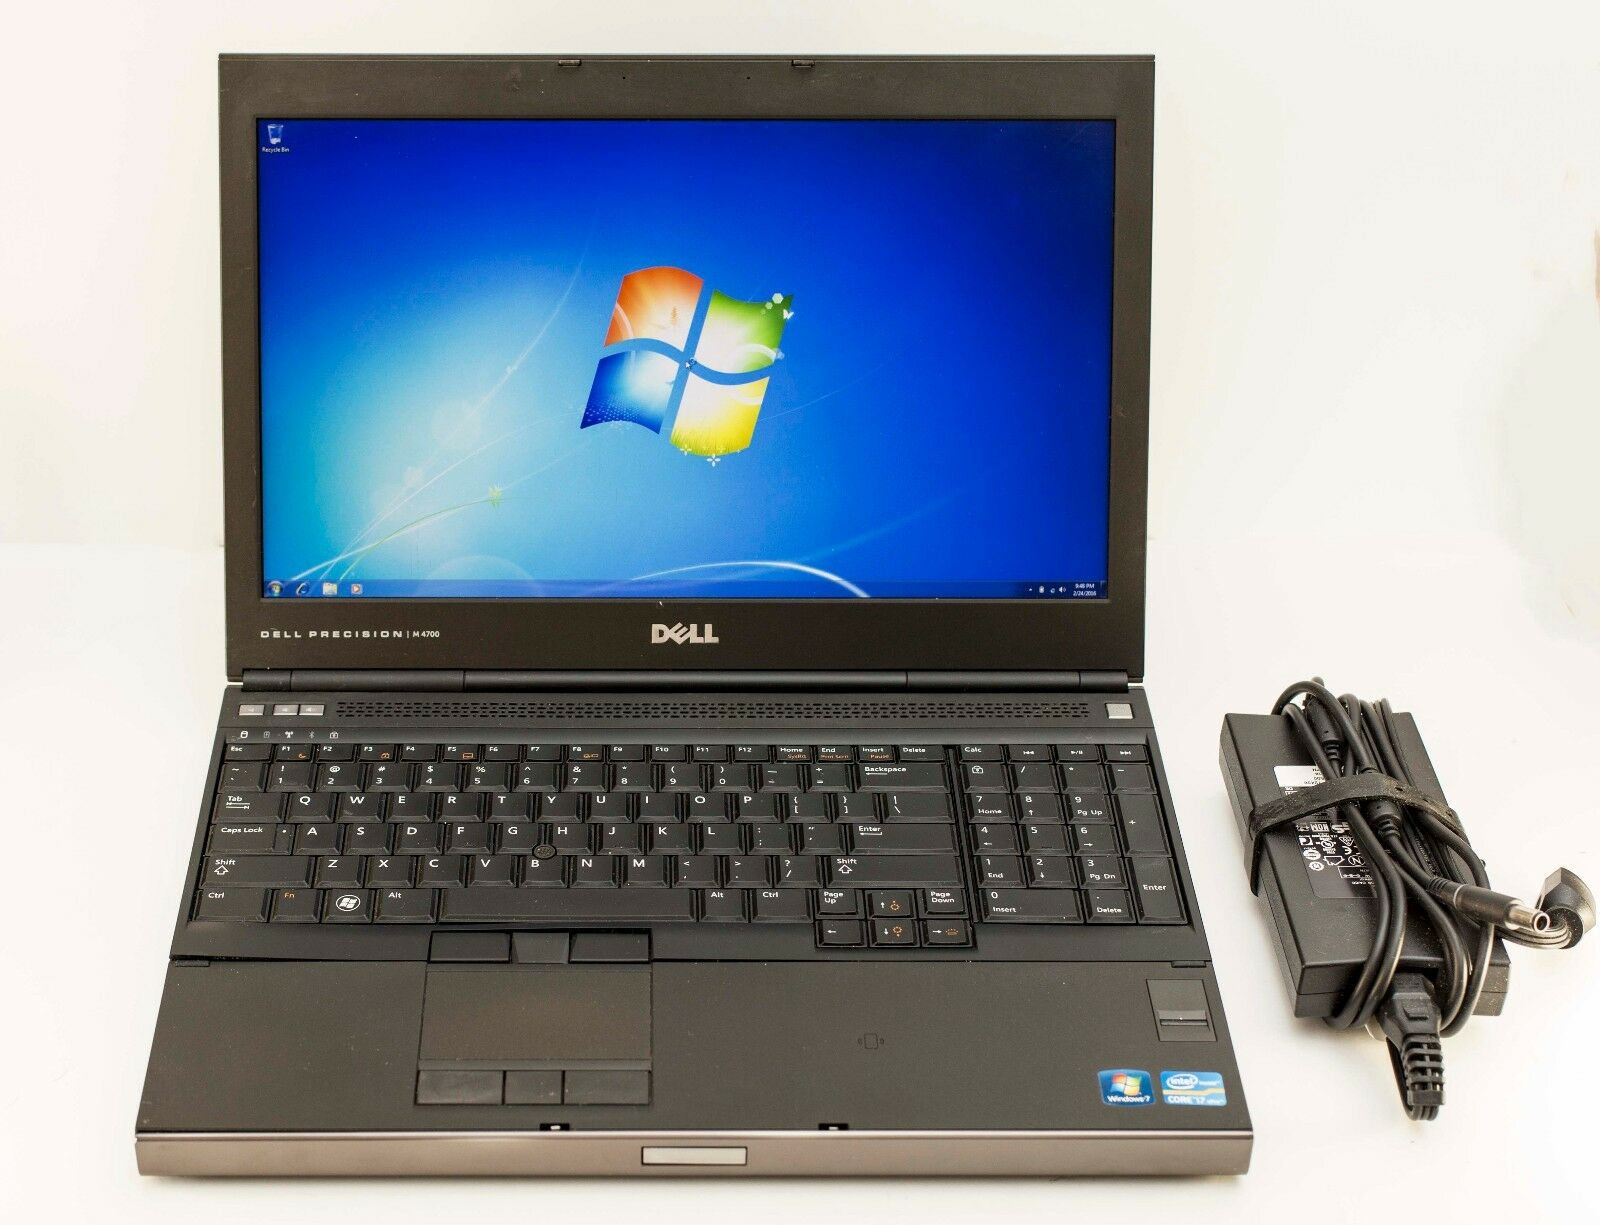 Dell Precision M4700 Core i7-3840QM 2.8GHz 4GB 1TB  Win 7 K2000m Gaming Laptop